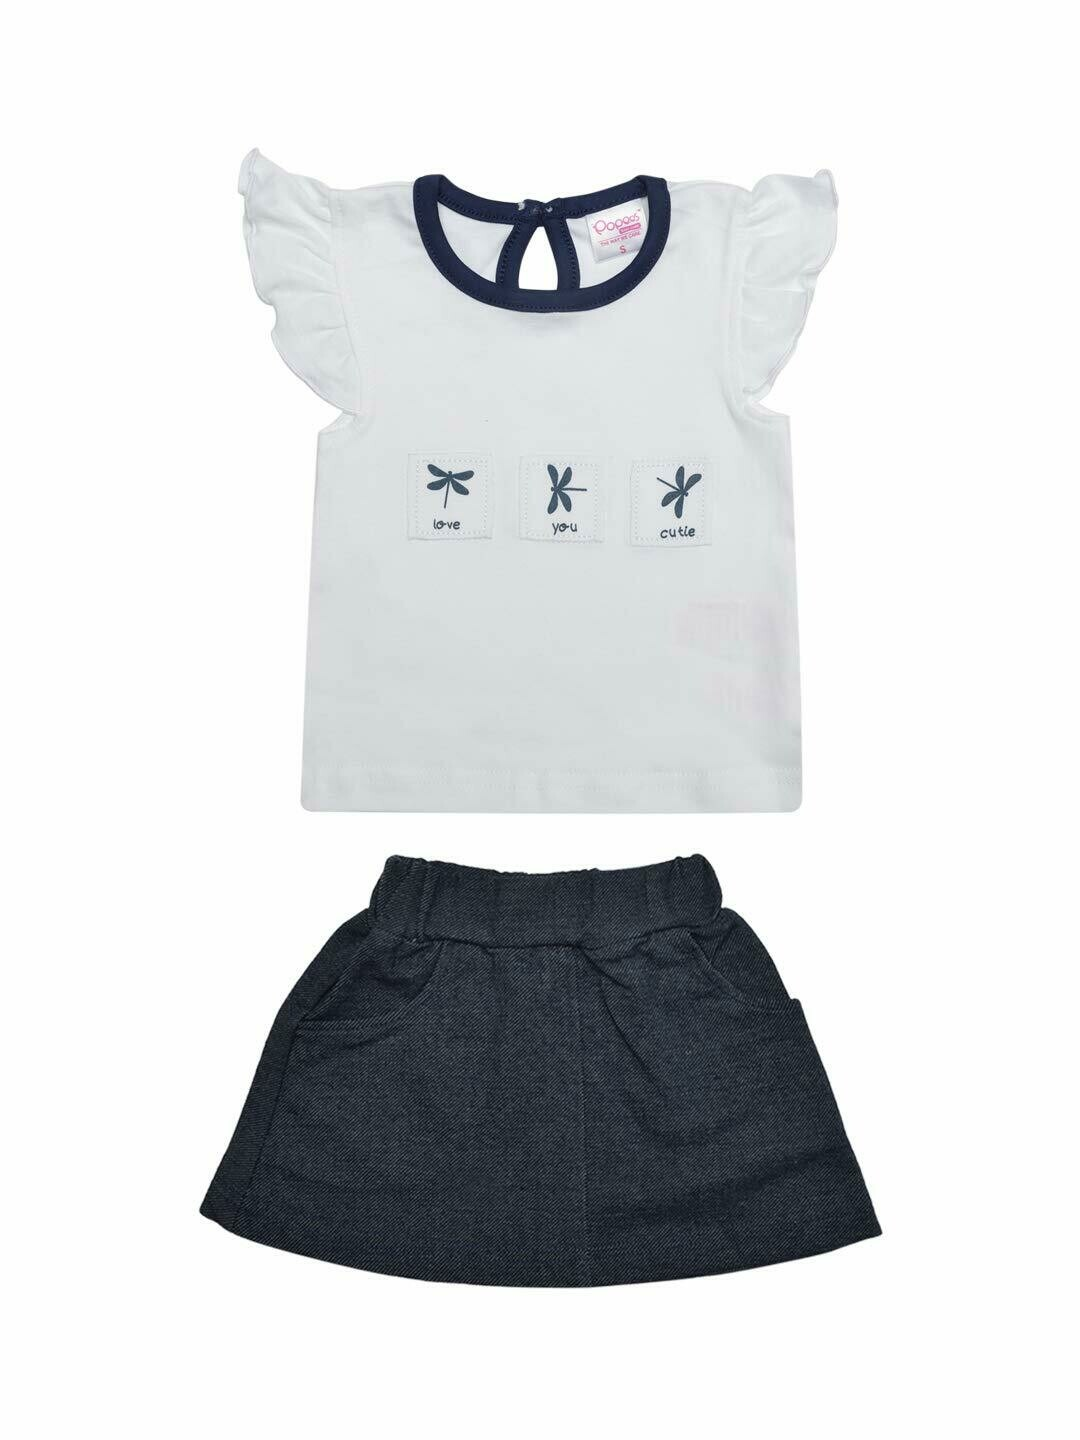 Zest White Cap Sleeves Round Neck Top with Skirt for Girls